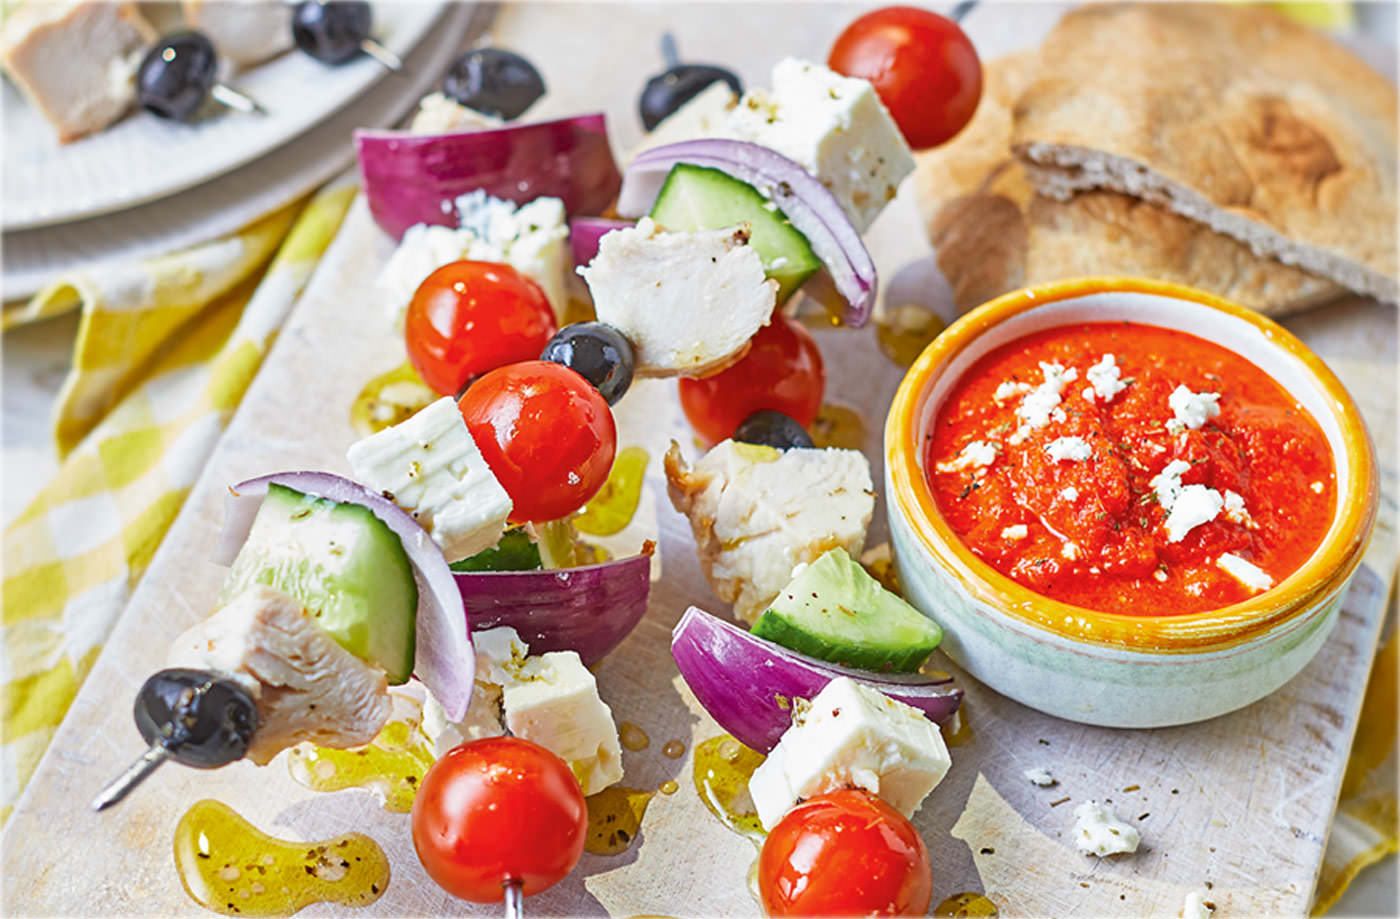 Greek salad kebabs with red pepper dip recipe